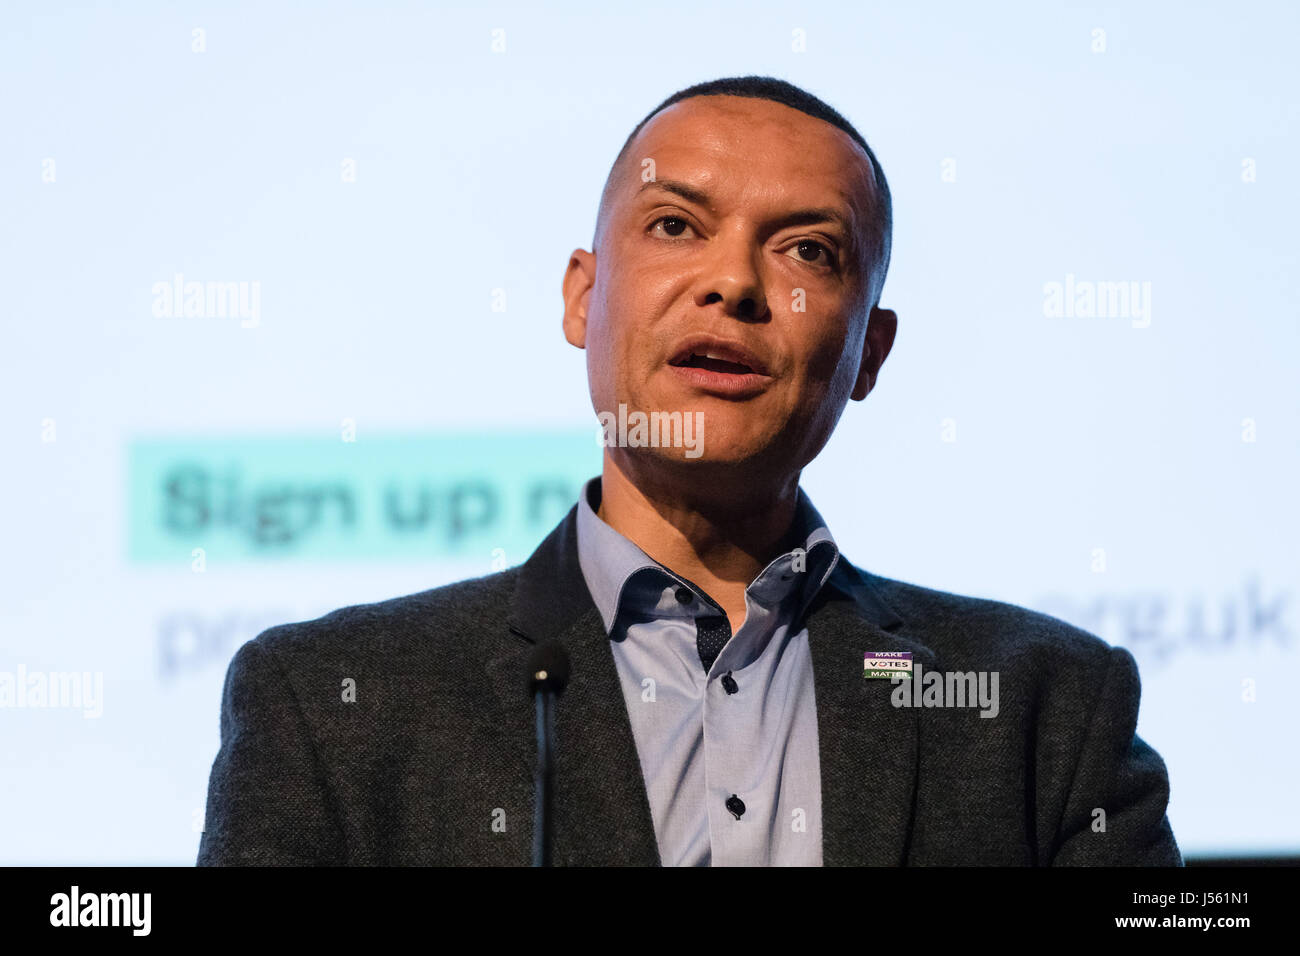 London, UK. 15th May 2017. Clive Lewis, Labour Party MP speaks at the Progressive Alliance Launch in London this - Stock Image